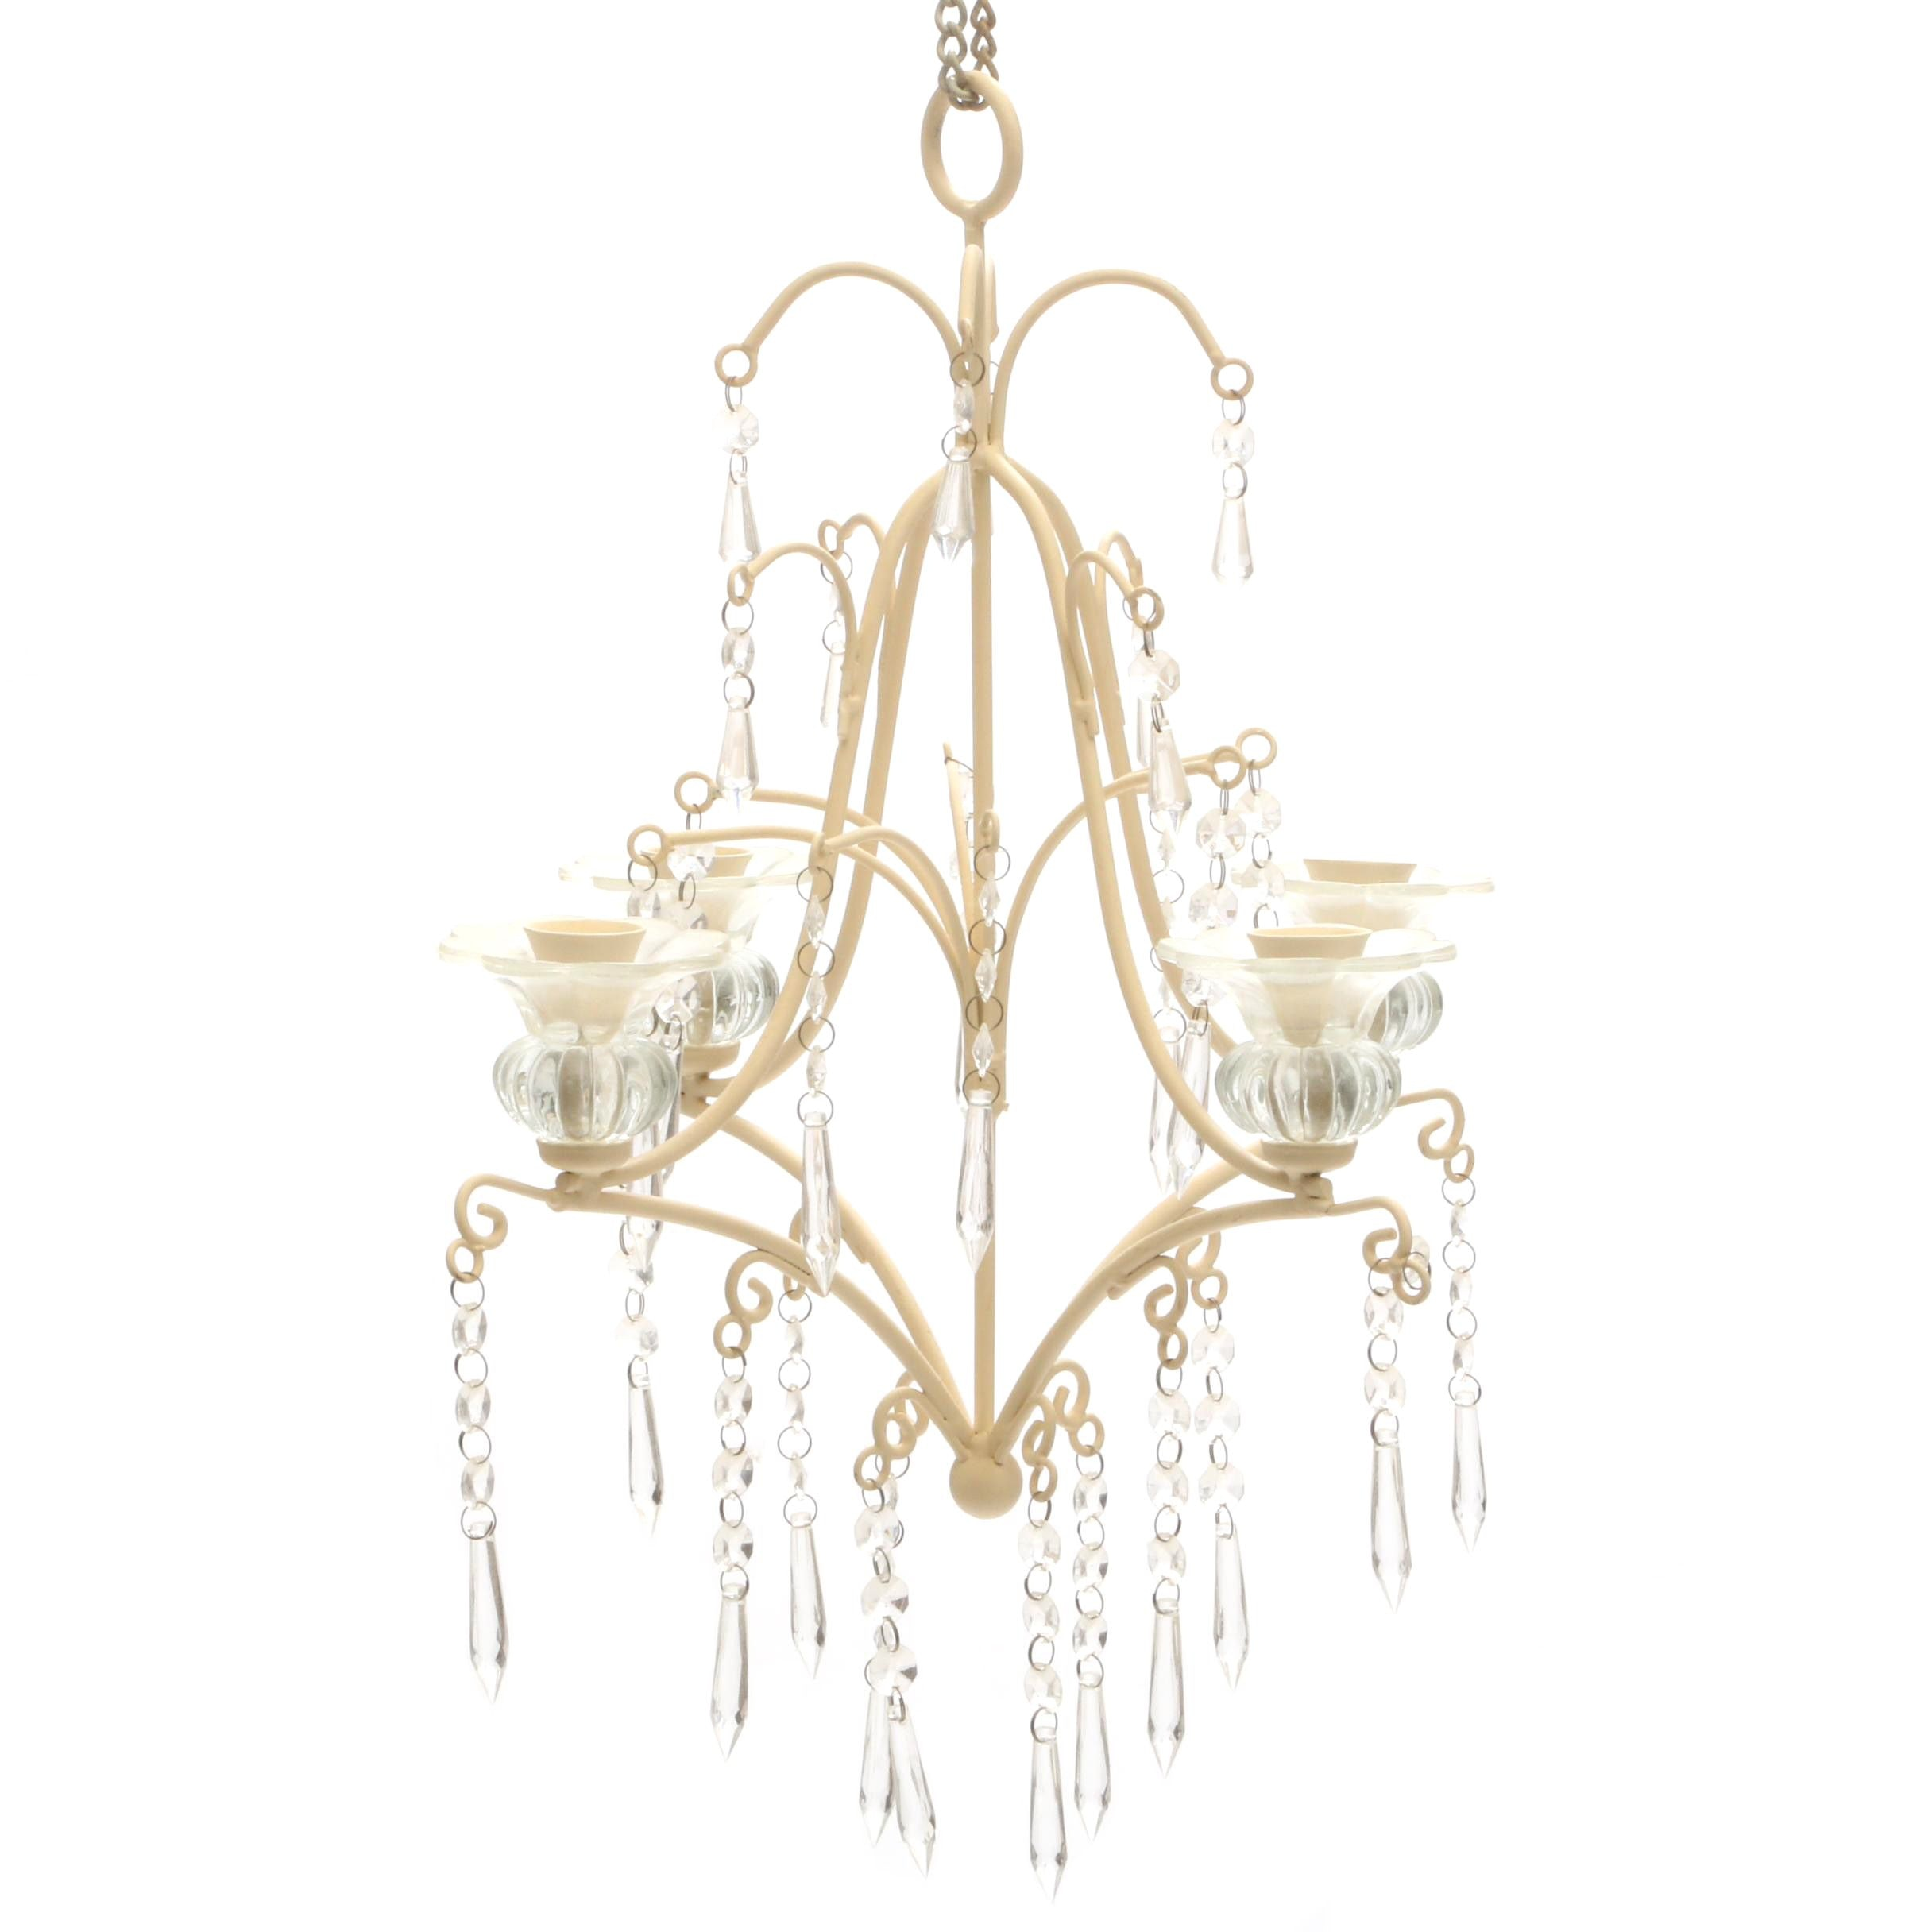 Painted Metal and Glass Prism Candelabra